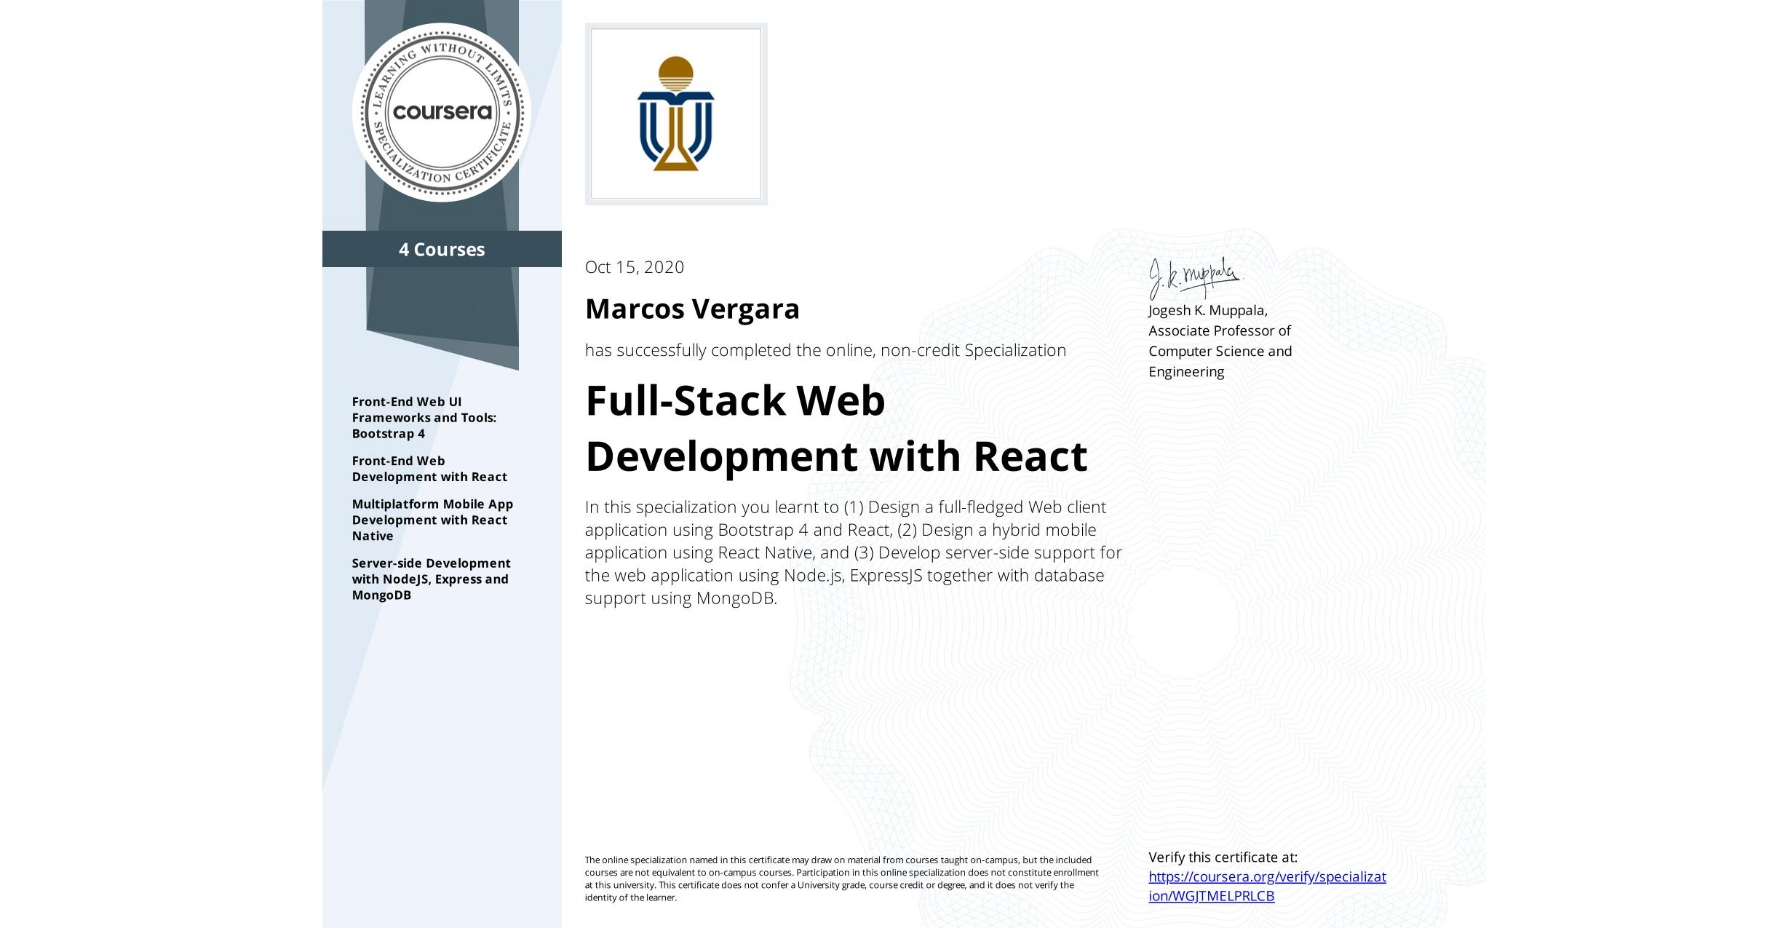 View certificate for Marcos Vergara, Full-Stack Web Development with React, offered through Coursera. In this specialization you learnt to (1) Design a full-fledged Web client application using Bootstrap 4 and React, (2) Design a hybrid mobile application using React Native, and (3) Develop server-side support for the web application using Node.js, ExpressJS together with database support using MongoDB.